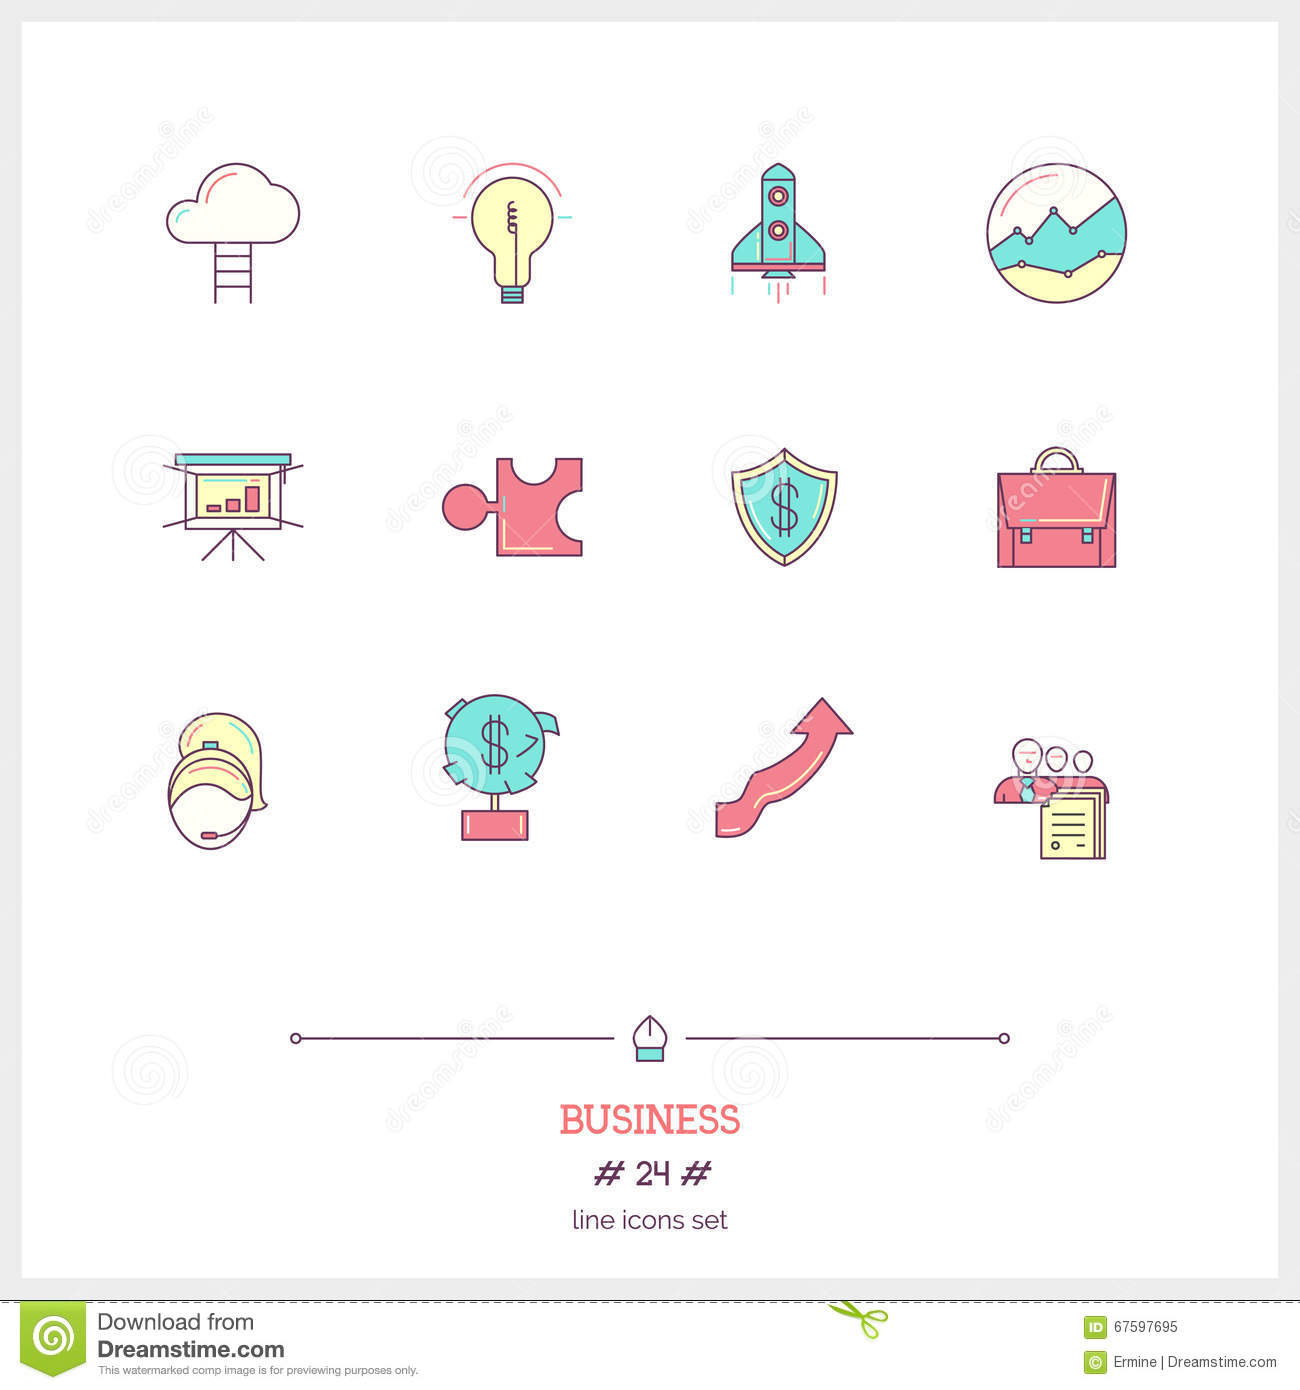 Cymk Puzzle Business Objects Icon Set Vector Illustration